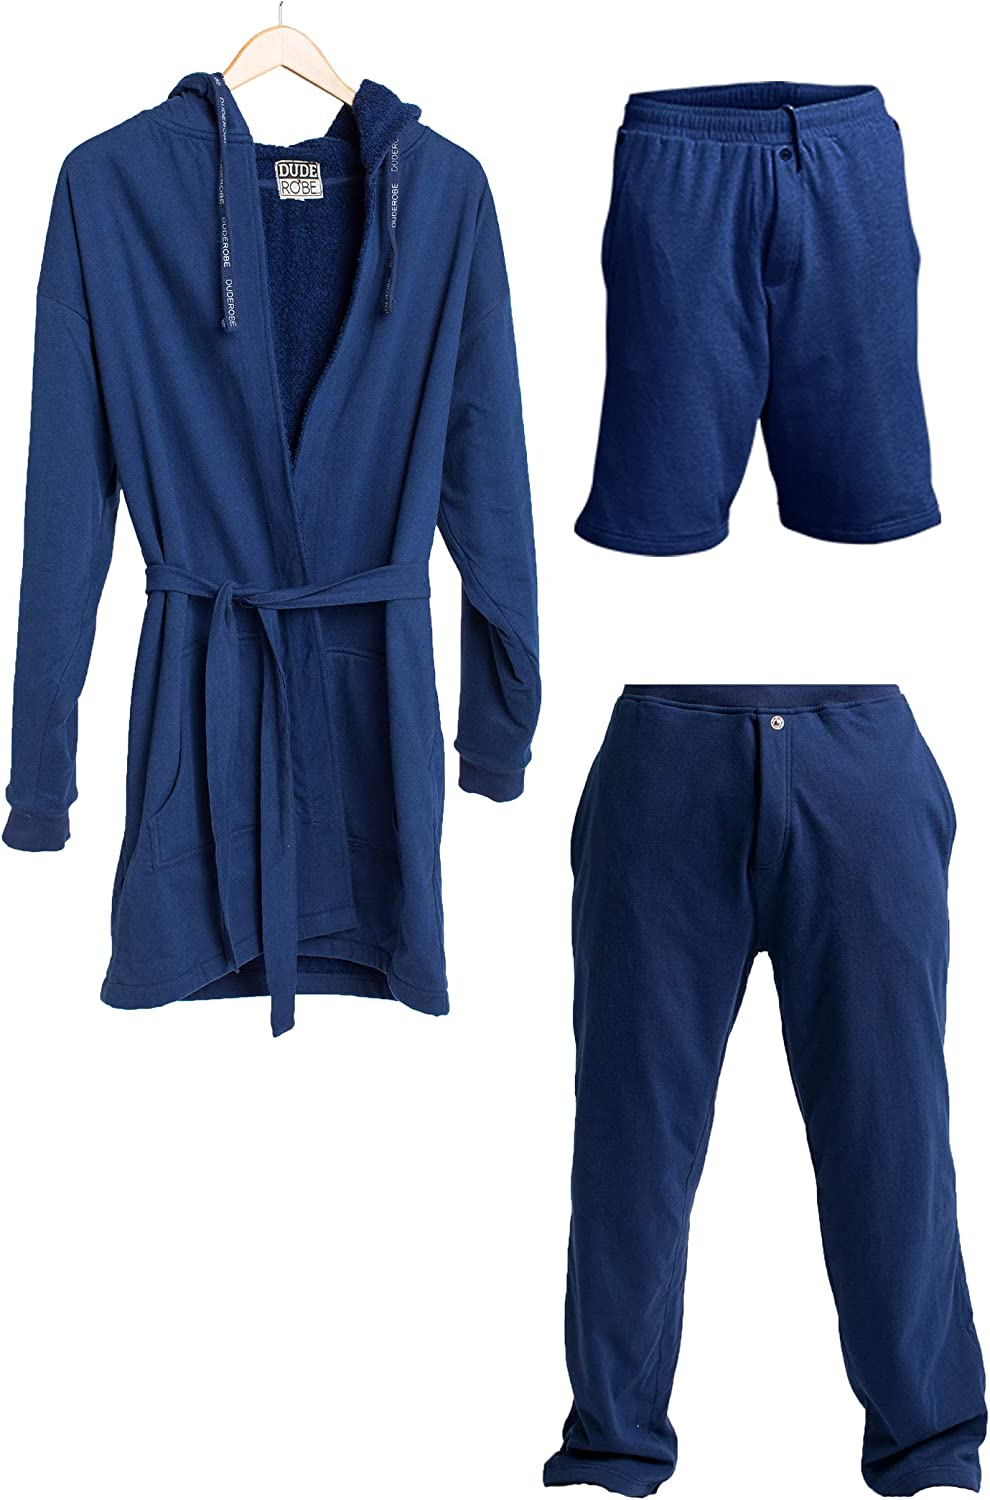 DudeRobe Men's Hooded Robe, SweatShorts, and Sweatpants Set | As Seen on Shark Tank!